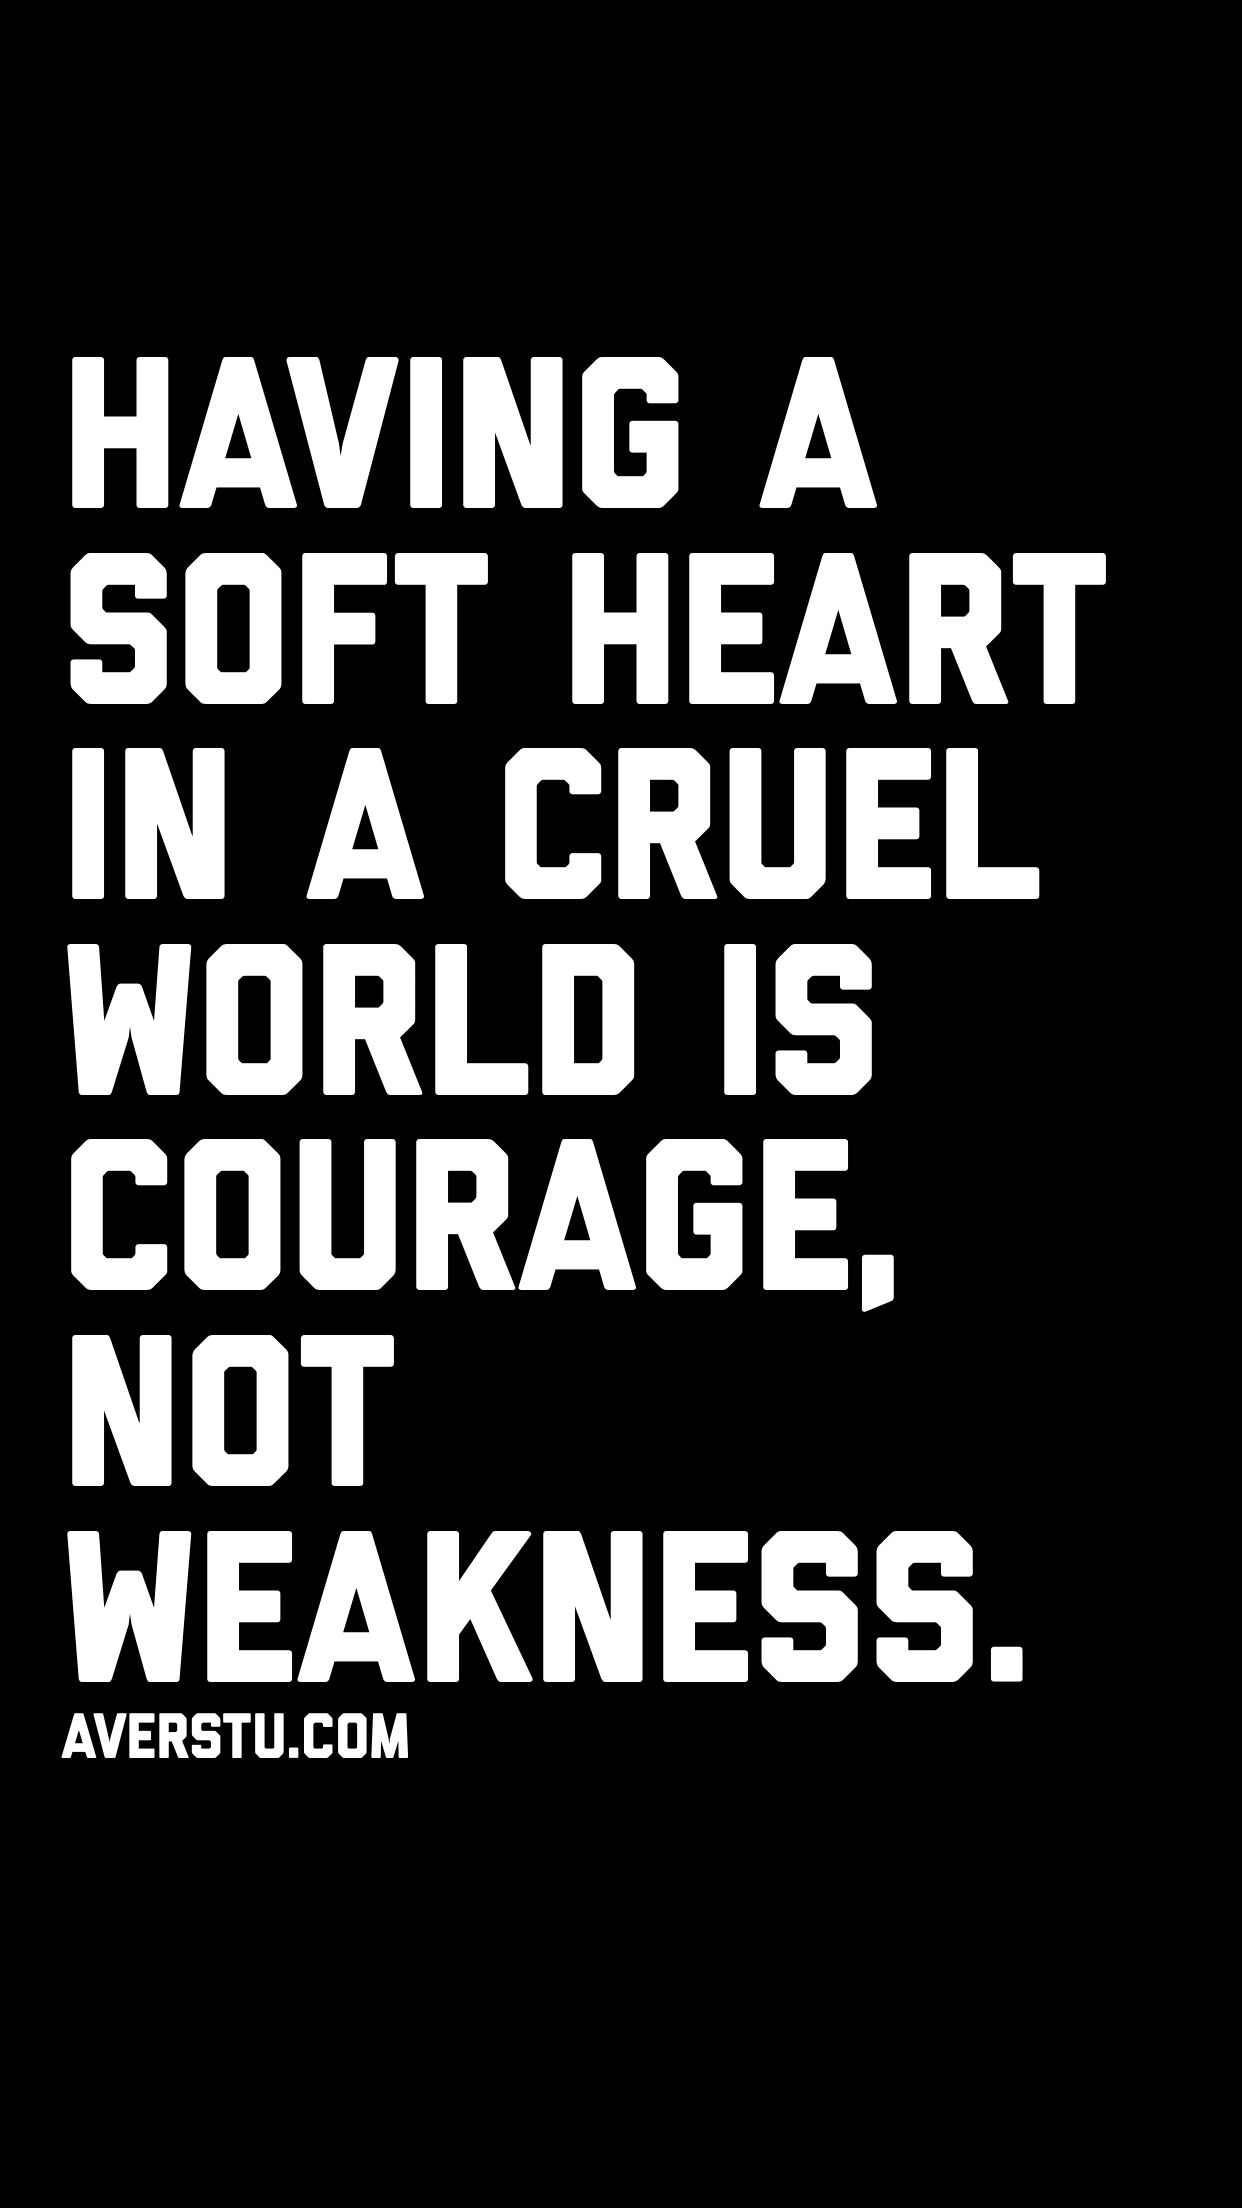 200 Inspirational Valuable Life Quotes That Will Make You Think Deeply Courage Quotes Wise Quotes True Words